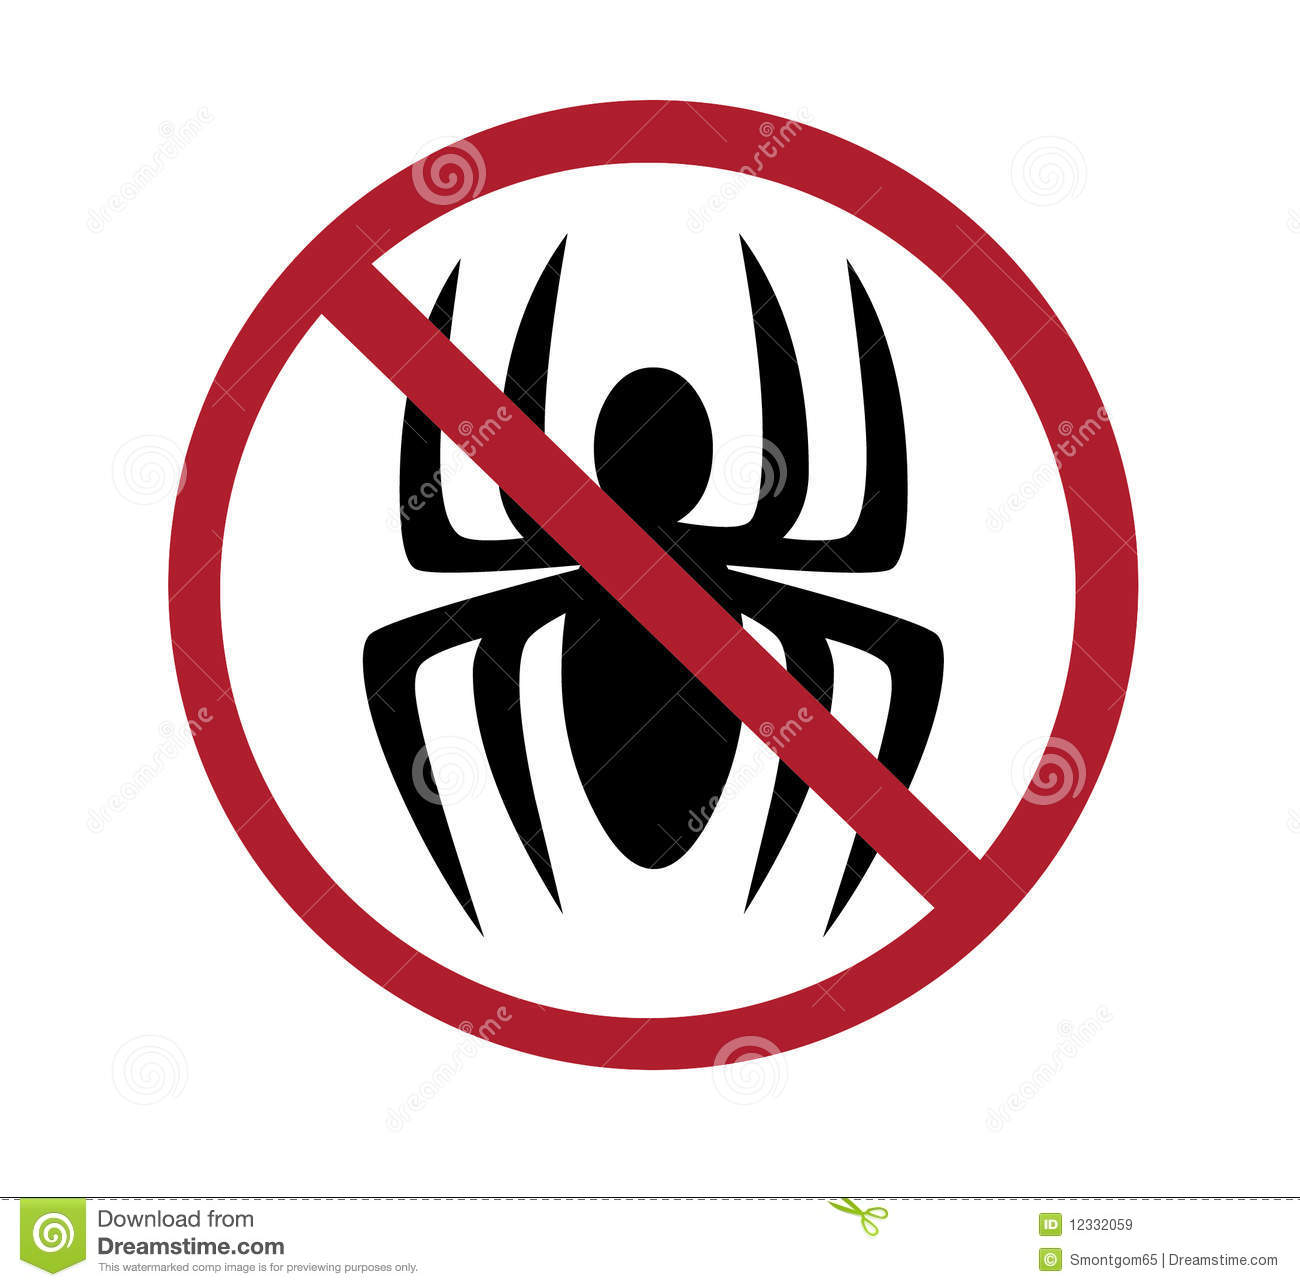 Spray rooms with 25 peppermint oil and keep spiders at for How to stop spiders coming in your house